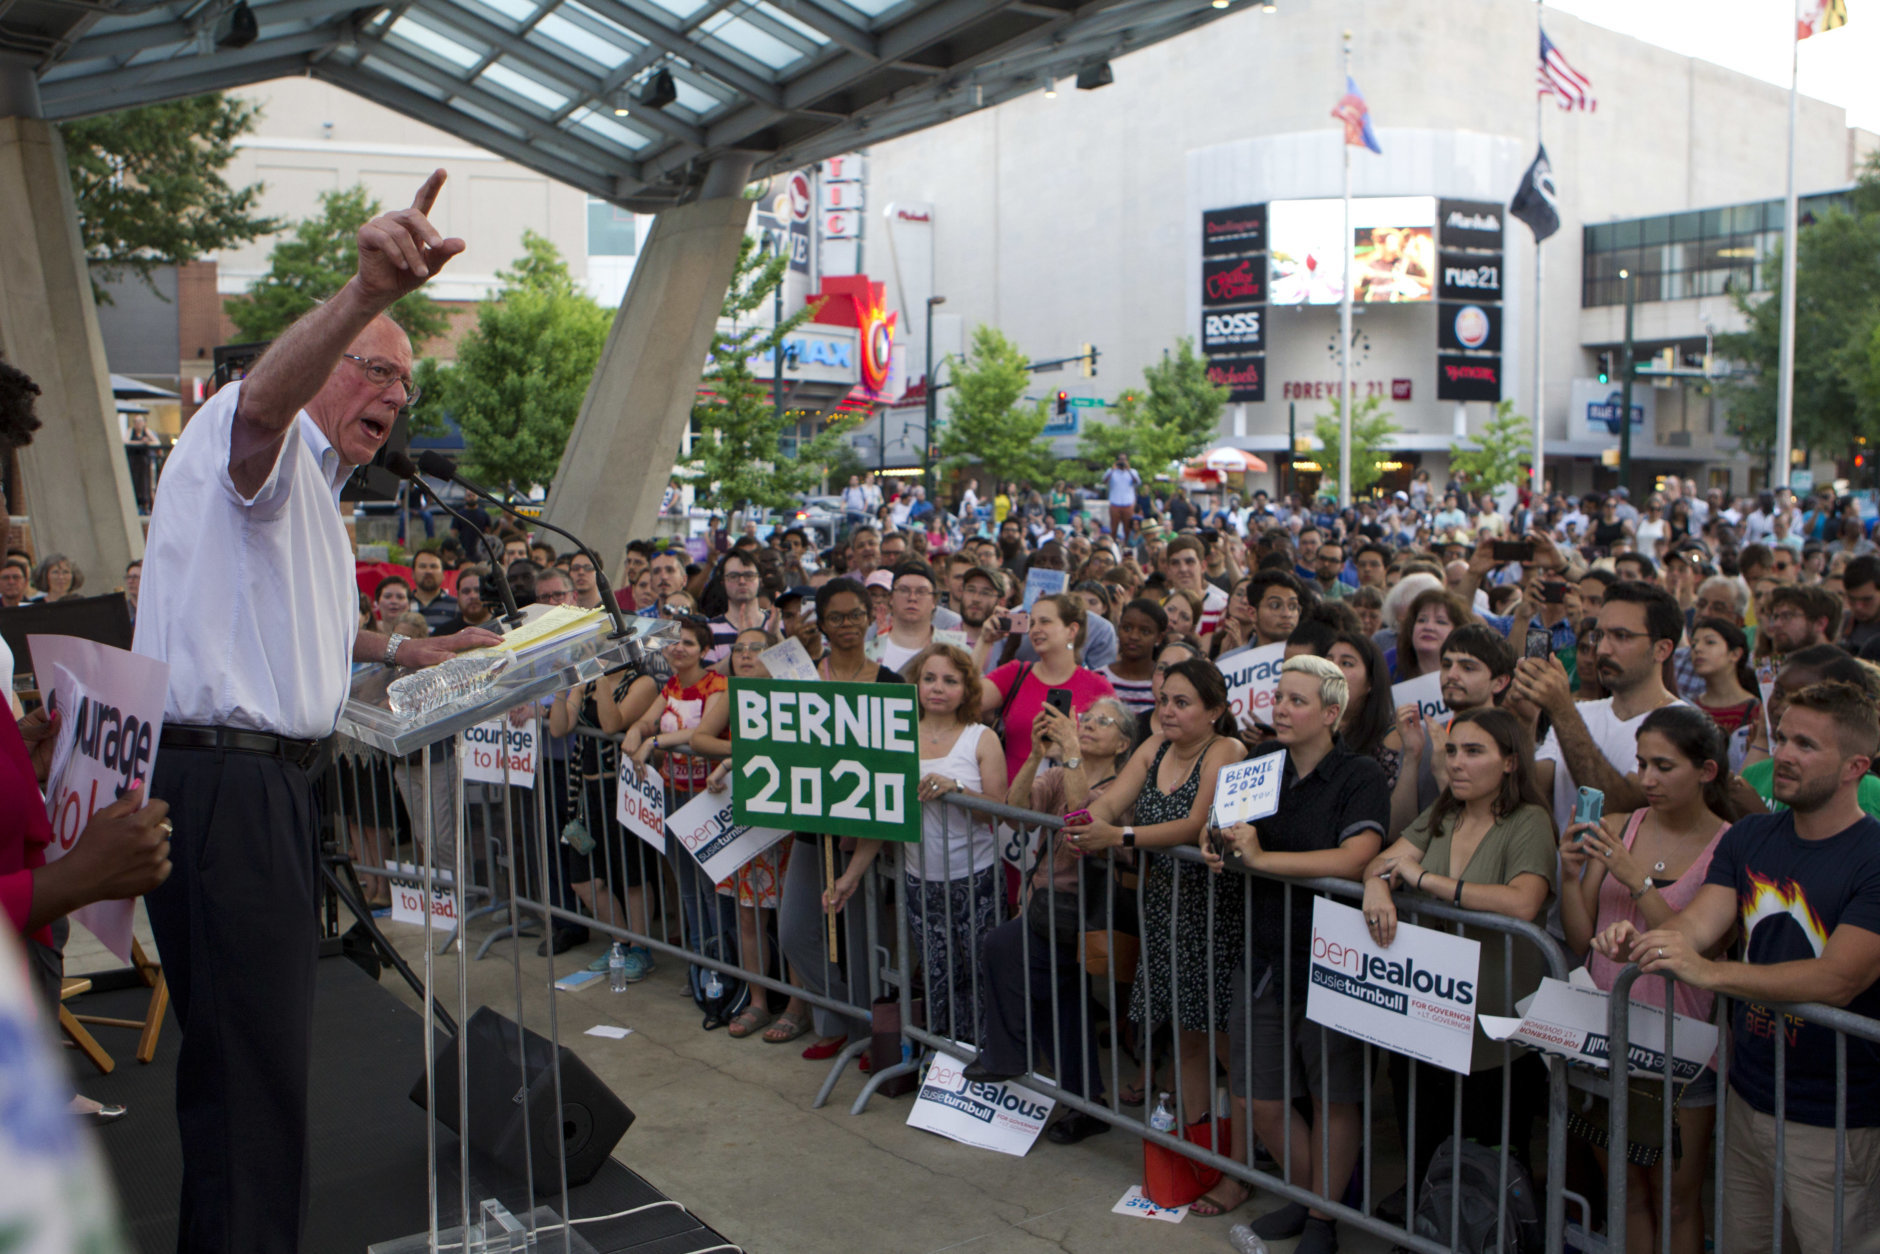 Sen. Bernie Sanders, I-Vt., accompanied by Democrat Ben Jealous speaks to the crowd during a gubernatorial campaign rally in Maryland's Democratic primary in downtown Silver Spring, Md., Monday, June 18, 2018. Sanders may not be endorsing his own son's congressional bid, but he rallied on a hot Monday night in Maryland to fire up voters for Jealous' campaign for governor. (AP Photo/Jose Luis Magana)